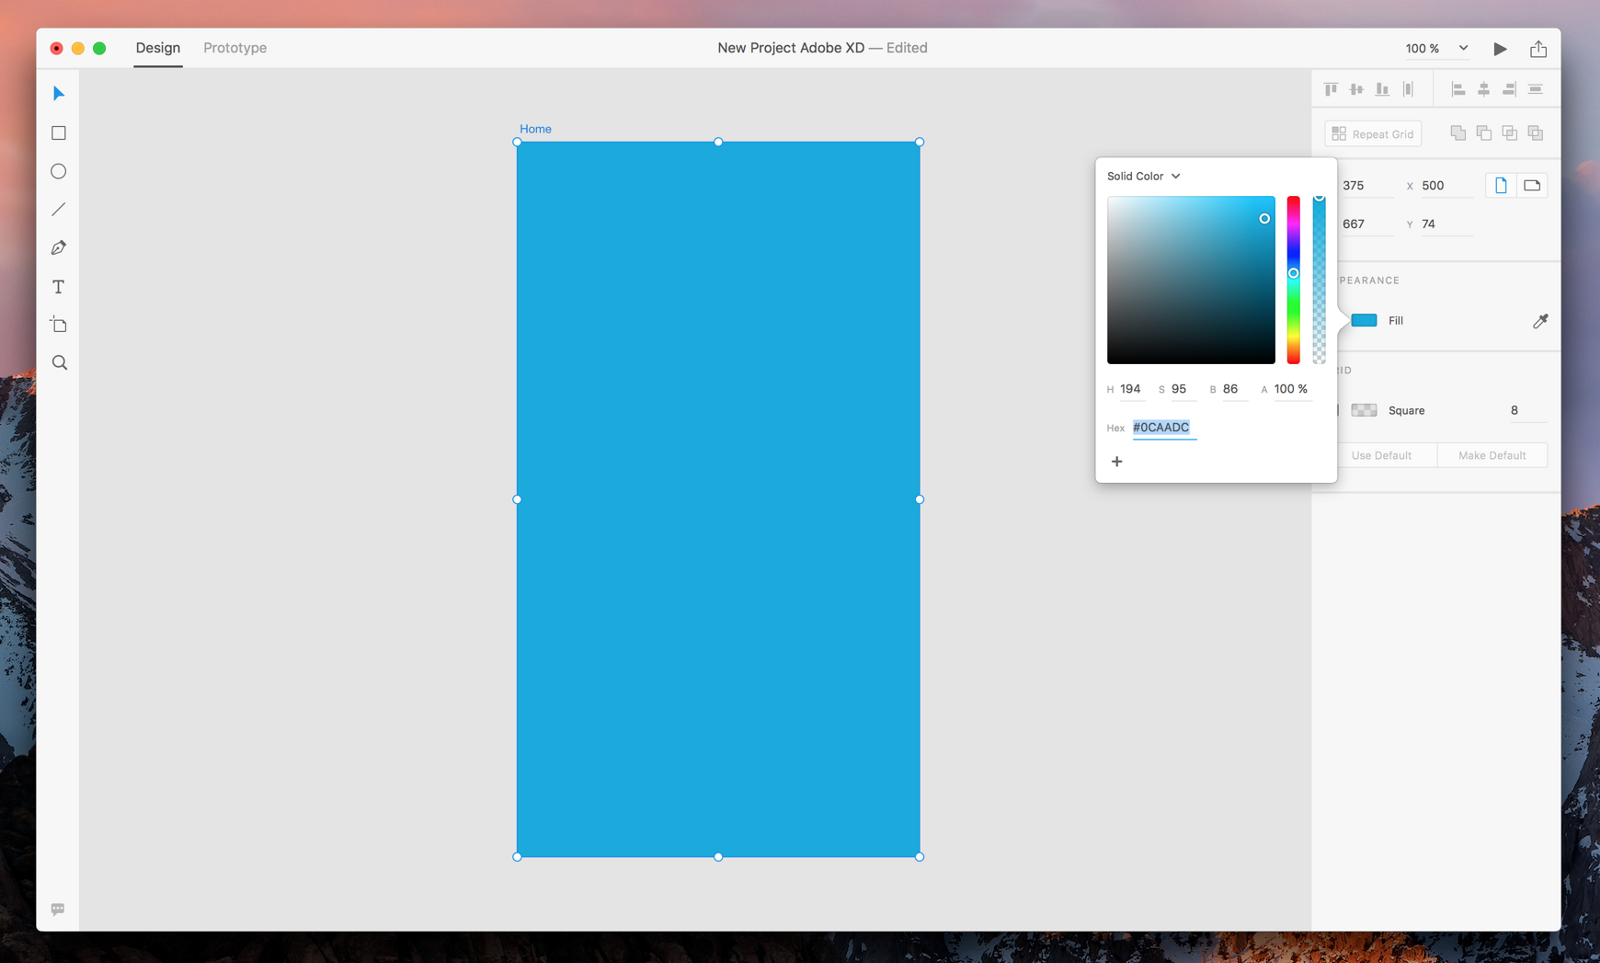 Changing the background color of an Artboard in Adobe XD